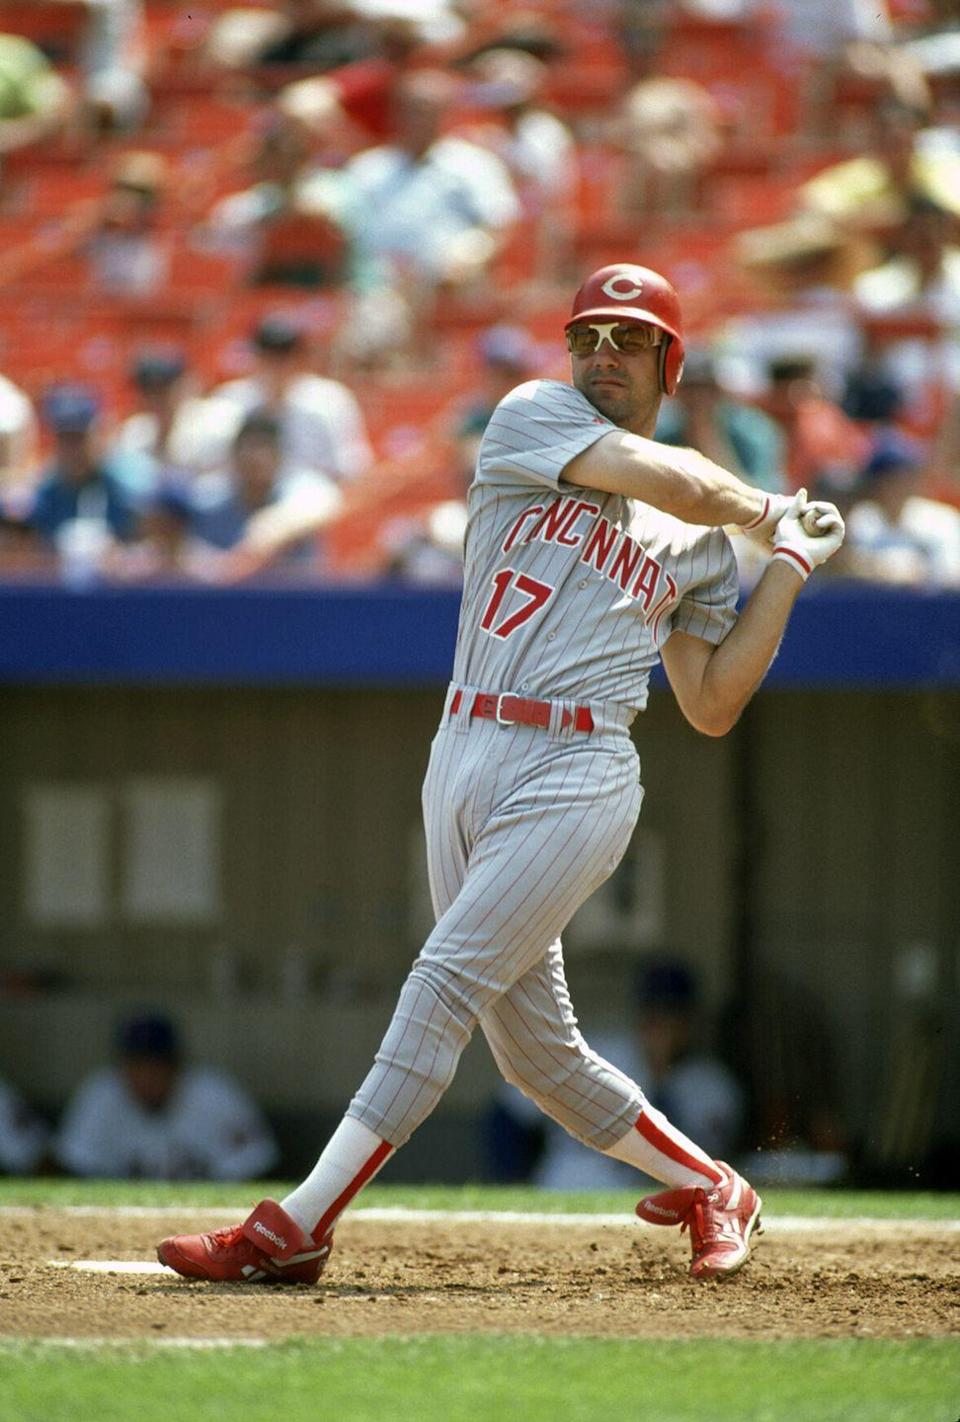 """<p>The former MLB player spent some time working for the golden arches before getting pulled up to the big leagues. While he was still playing in the minor leagues, he worked part-time at McDonalds to support himself, according to the <a href=""""https://www.cedwardsgroup.com/team/famous-employees.html"""" rel=""""nofollow noopener"""" target=""""_blank"""" data-ylk=""""slk:Chuck Edwards Group"""" class=""""link rapid-noclick-resp"""">Chuck Edwards Group</a>.</p>"""